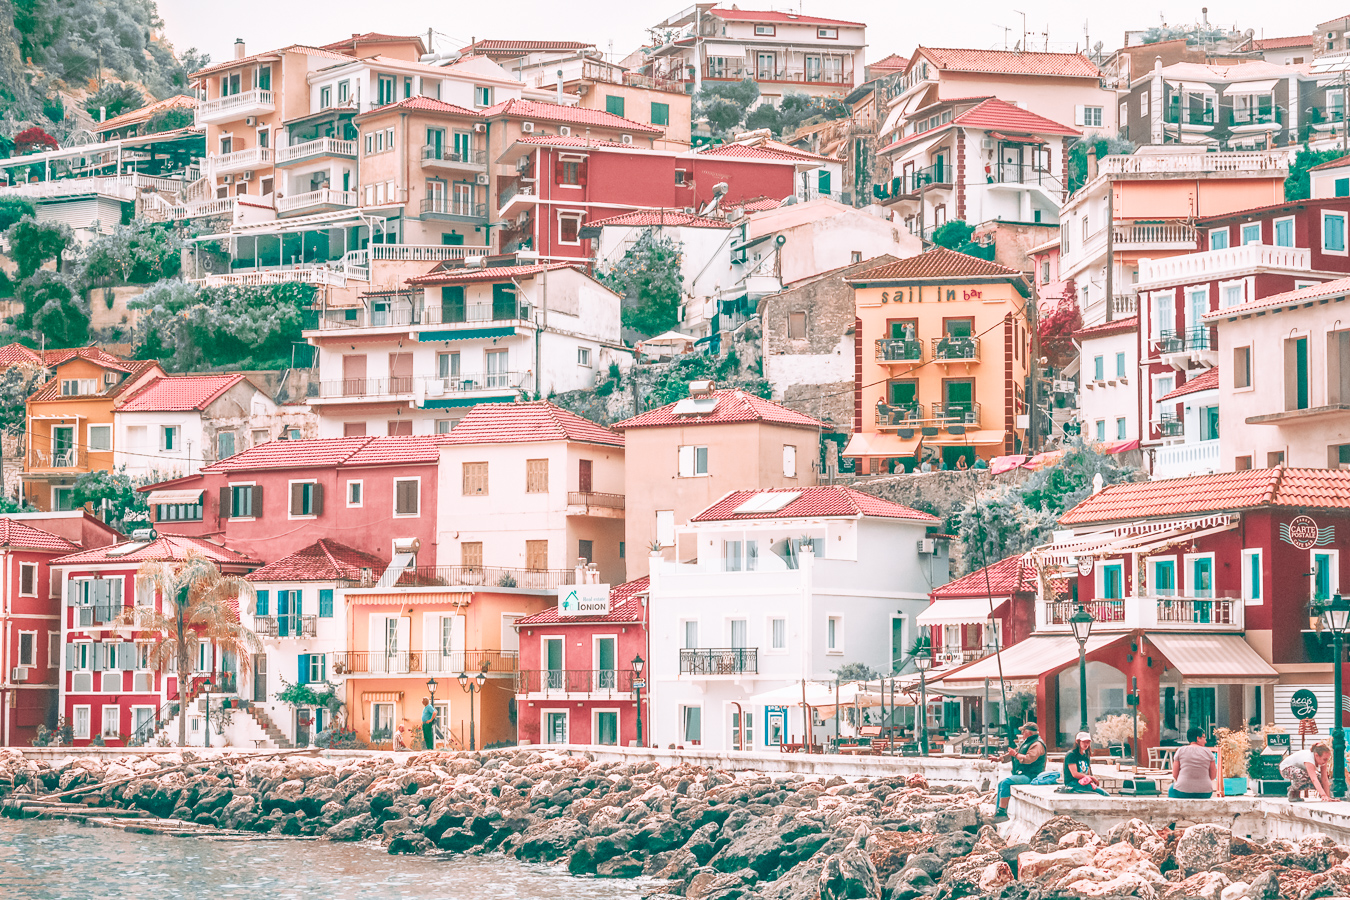 Colorful houses in Parga, Greece